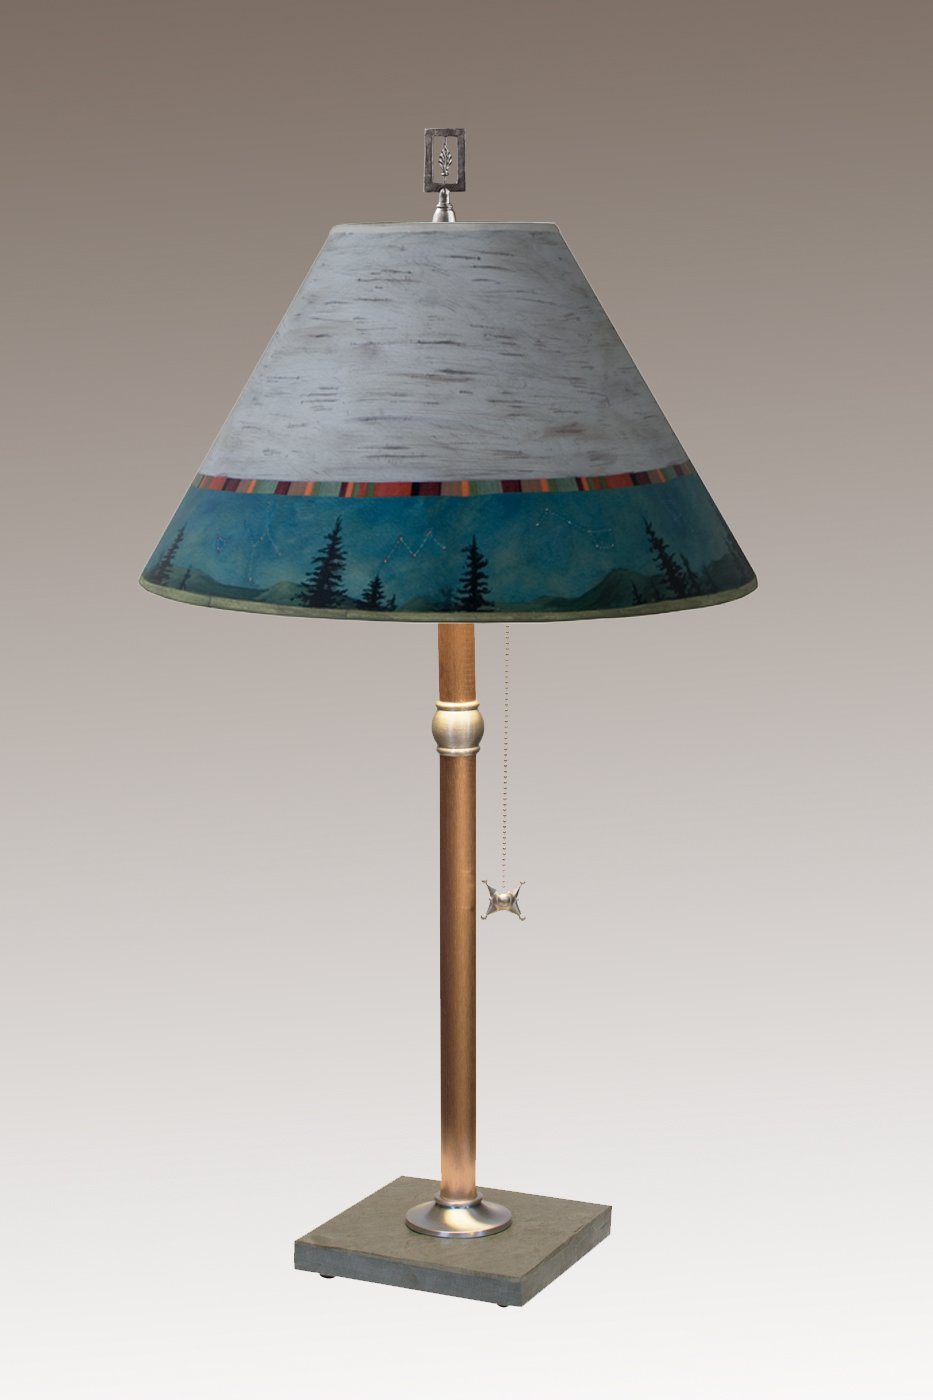 Copper Table Lamp on Vermont Slate with Medium Conical Shade in Birch Midnight